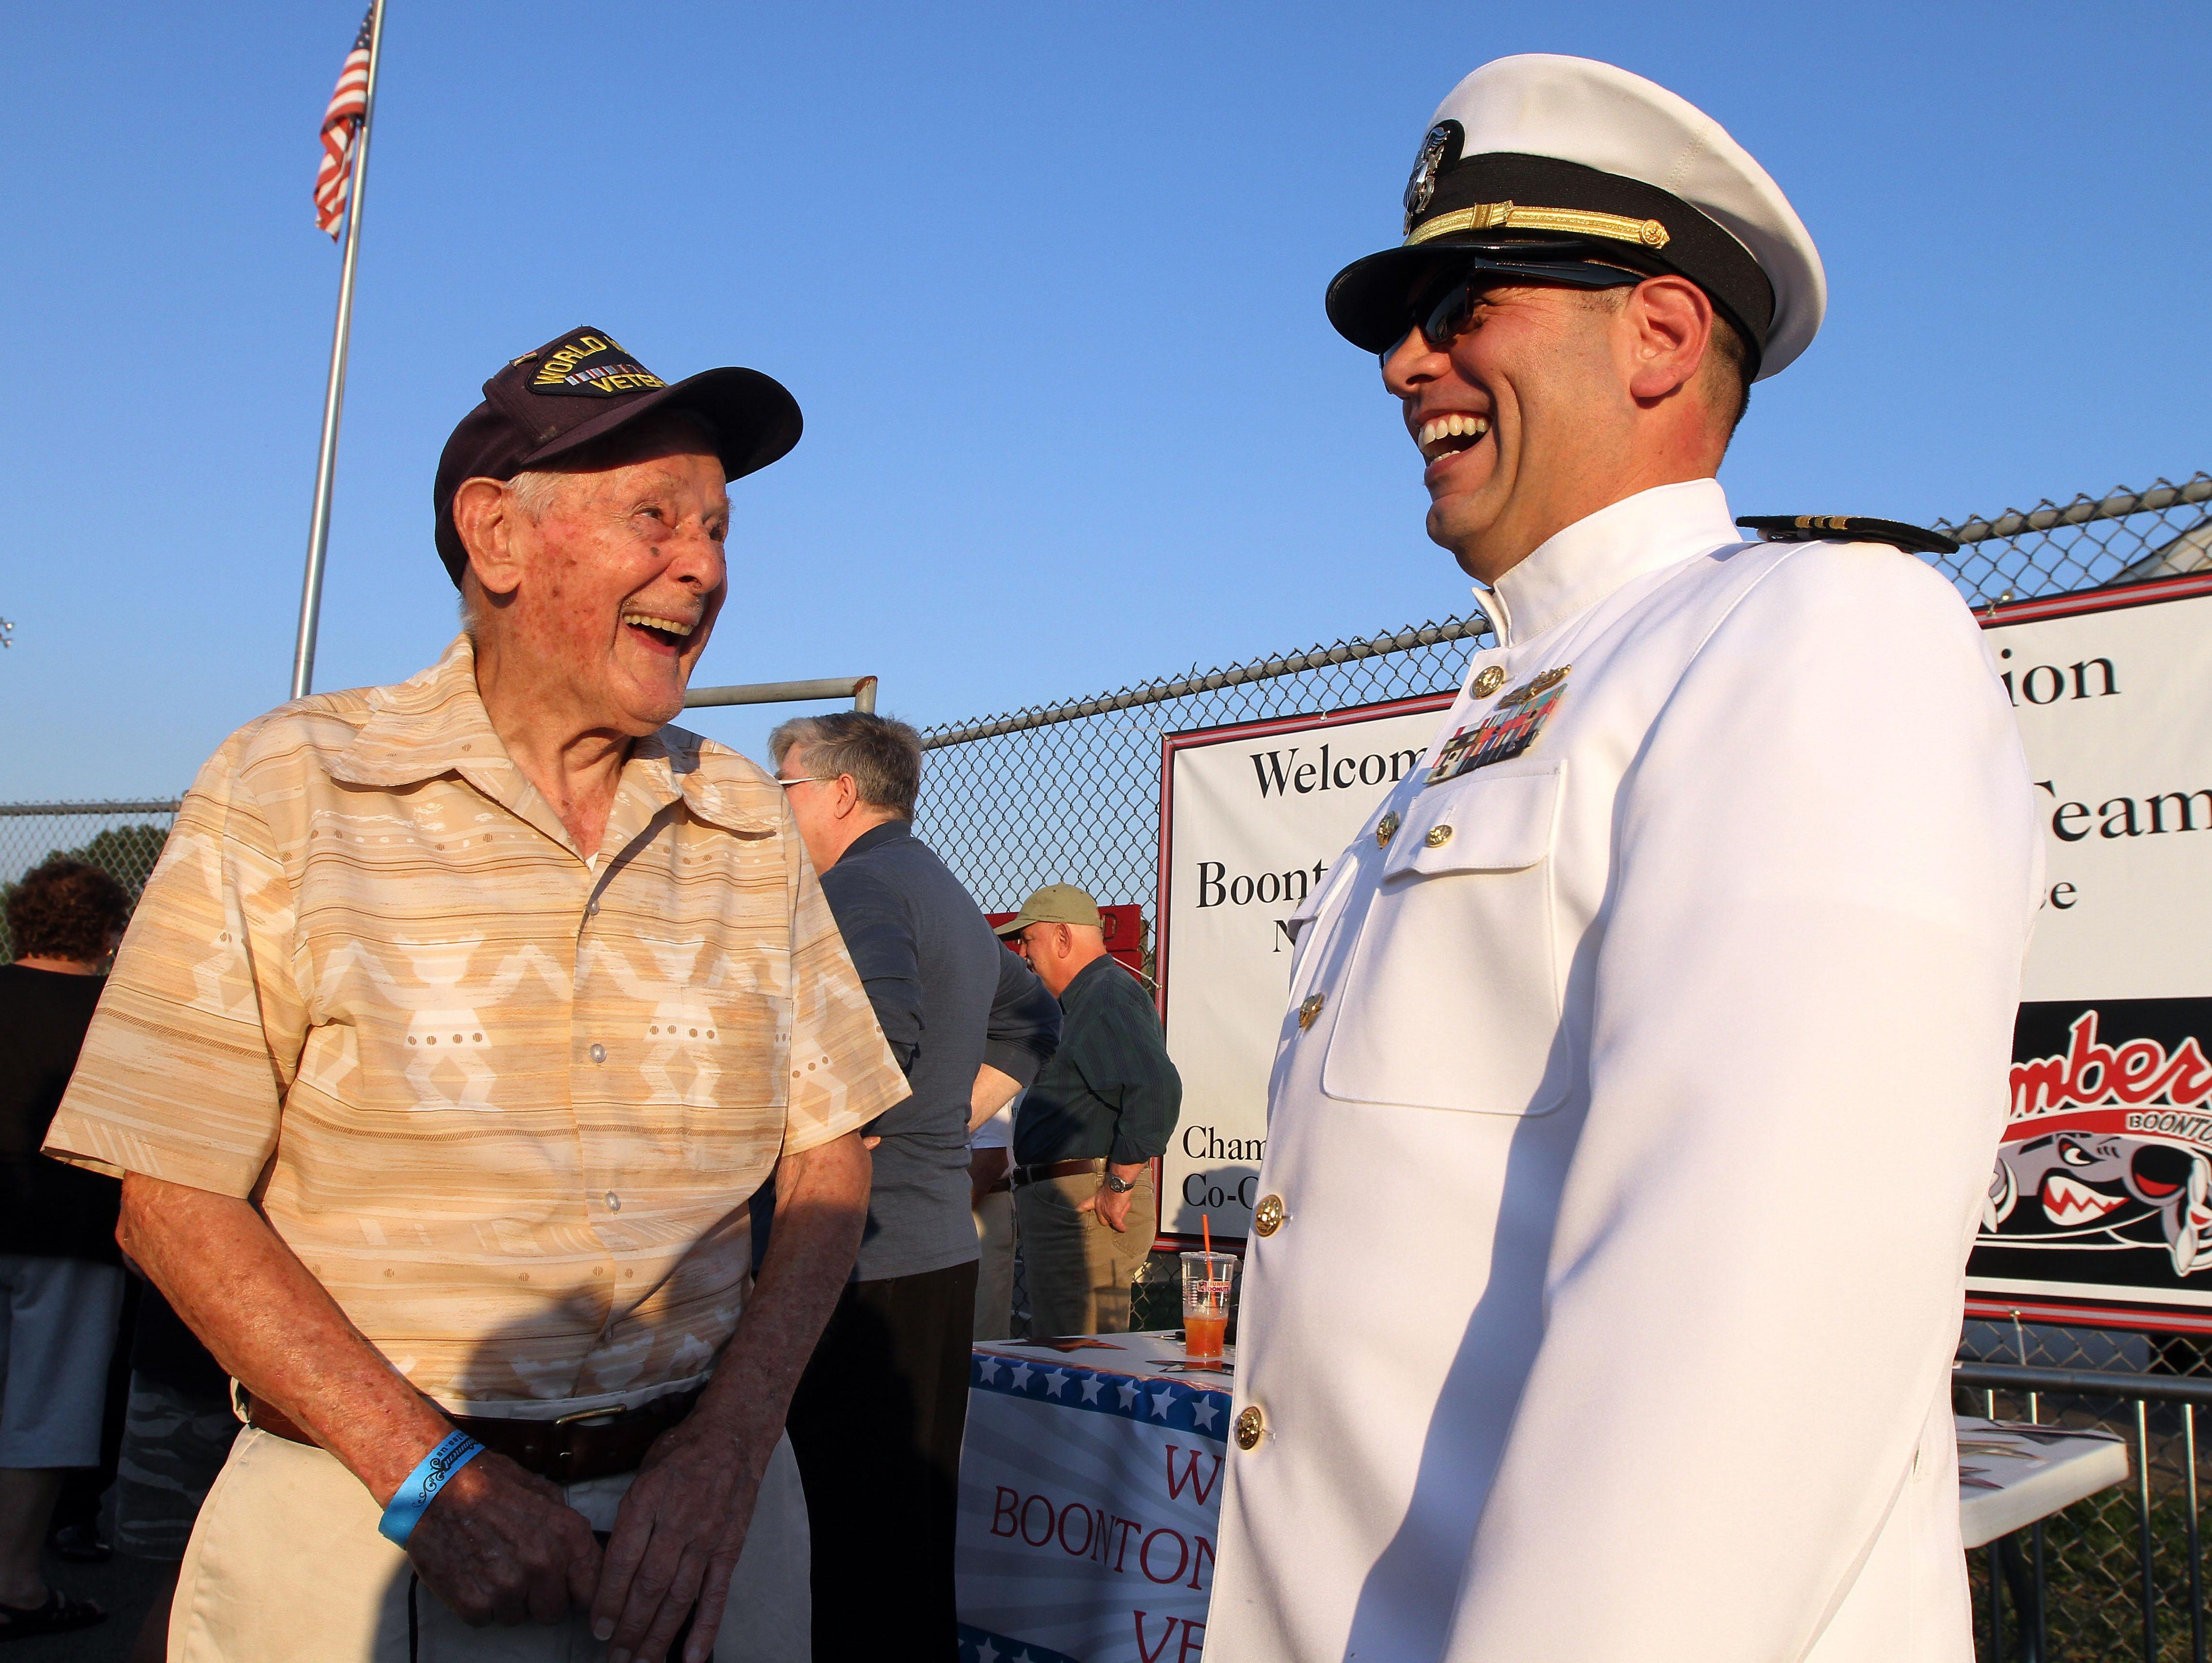 98-year-old World War II Air Force Veteran Steve Bolcar and Navy LCDR. Dennis Maida share a laugh before the Boonton vs Pequannock Friday night football matchup. Boonton High School honored its graduate military veterans during halftime.